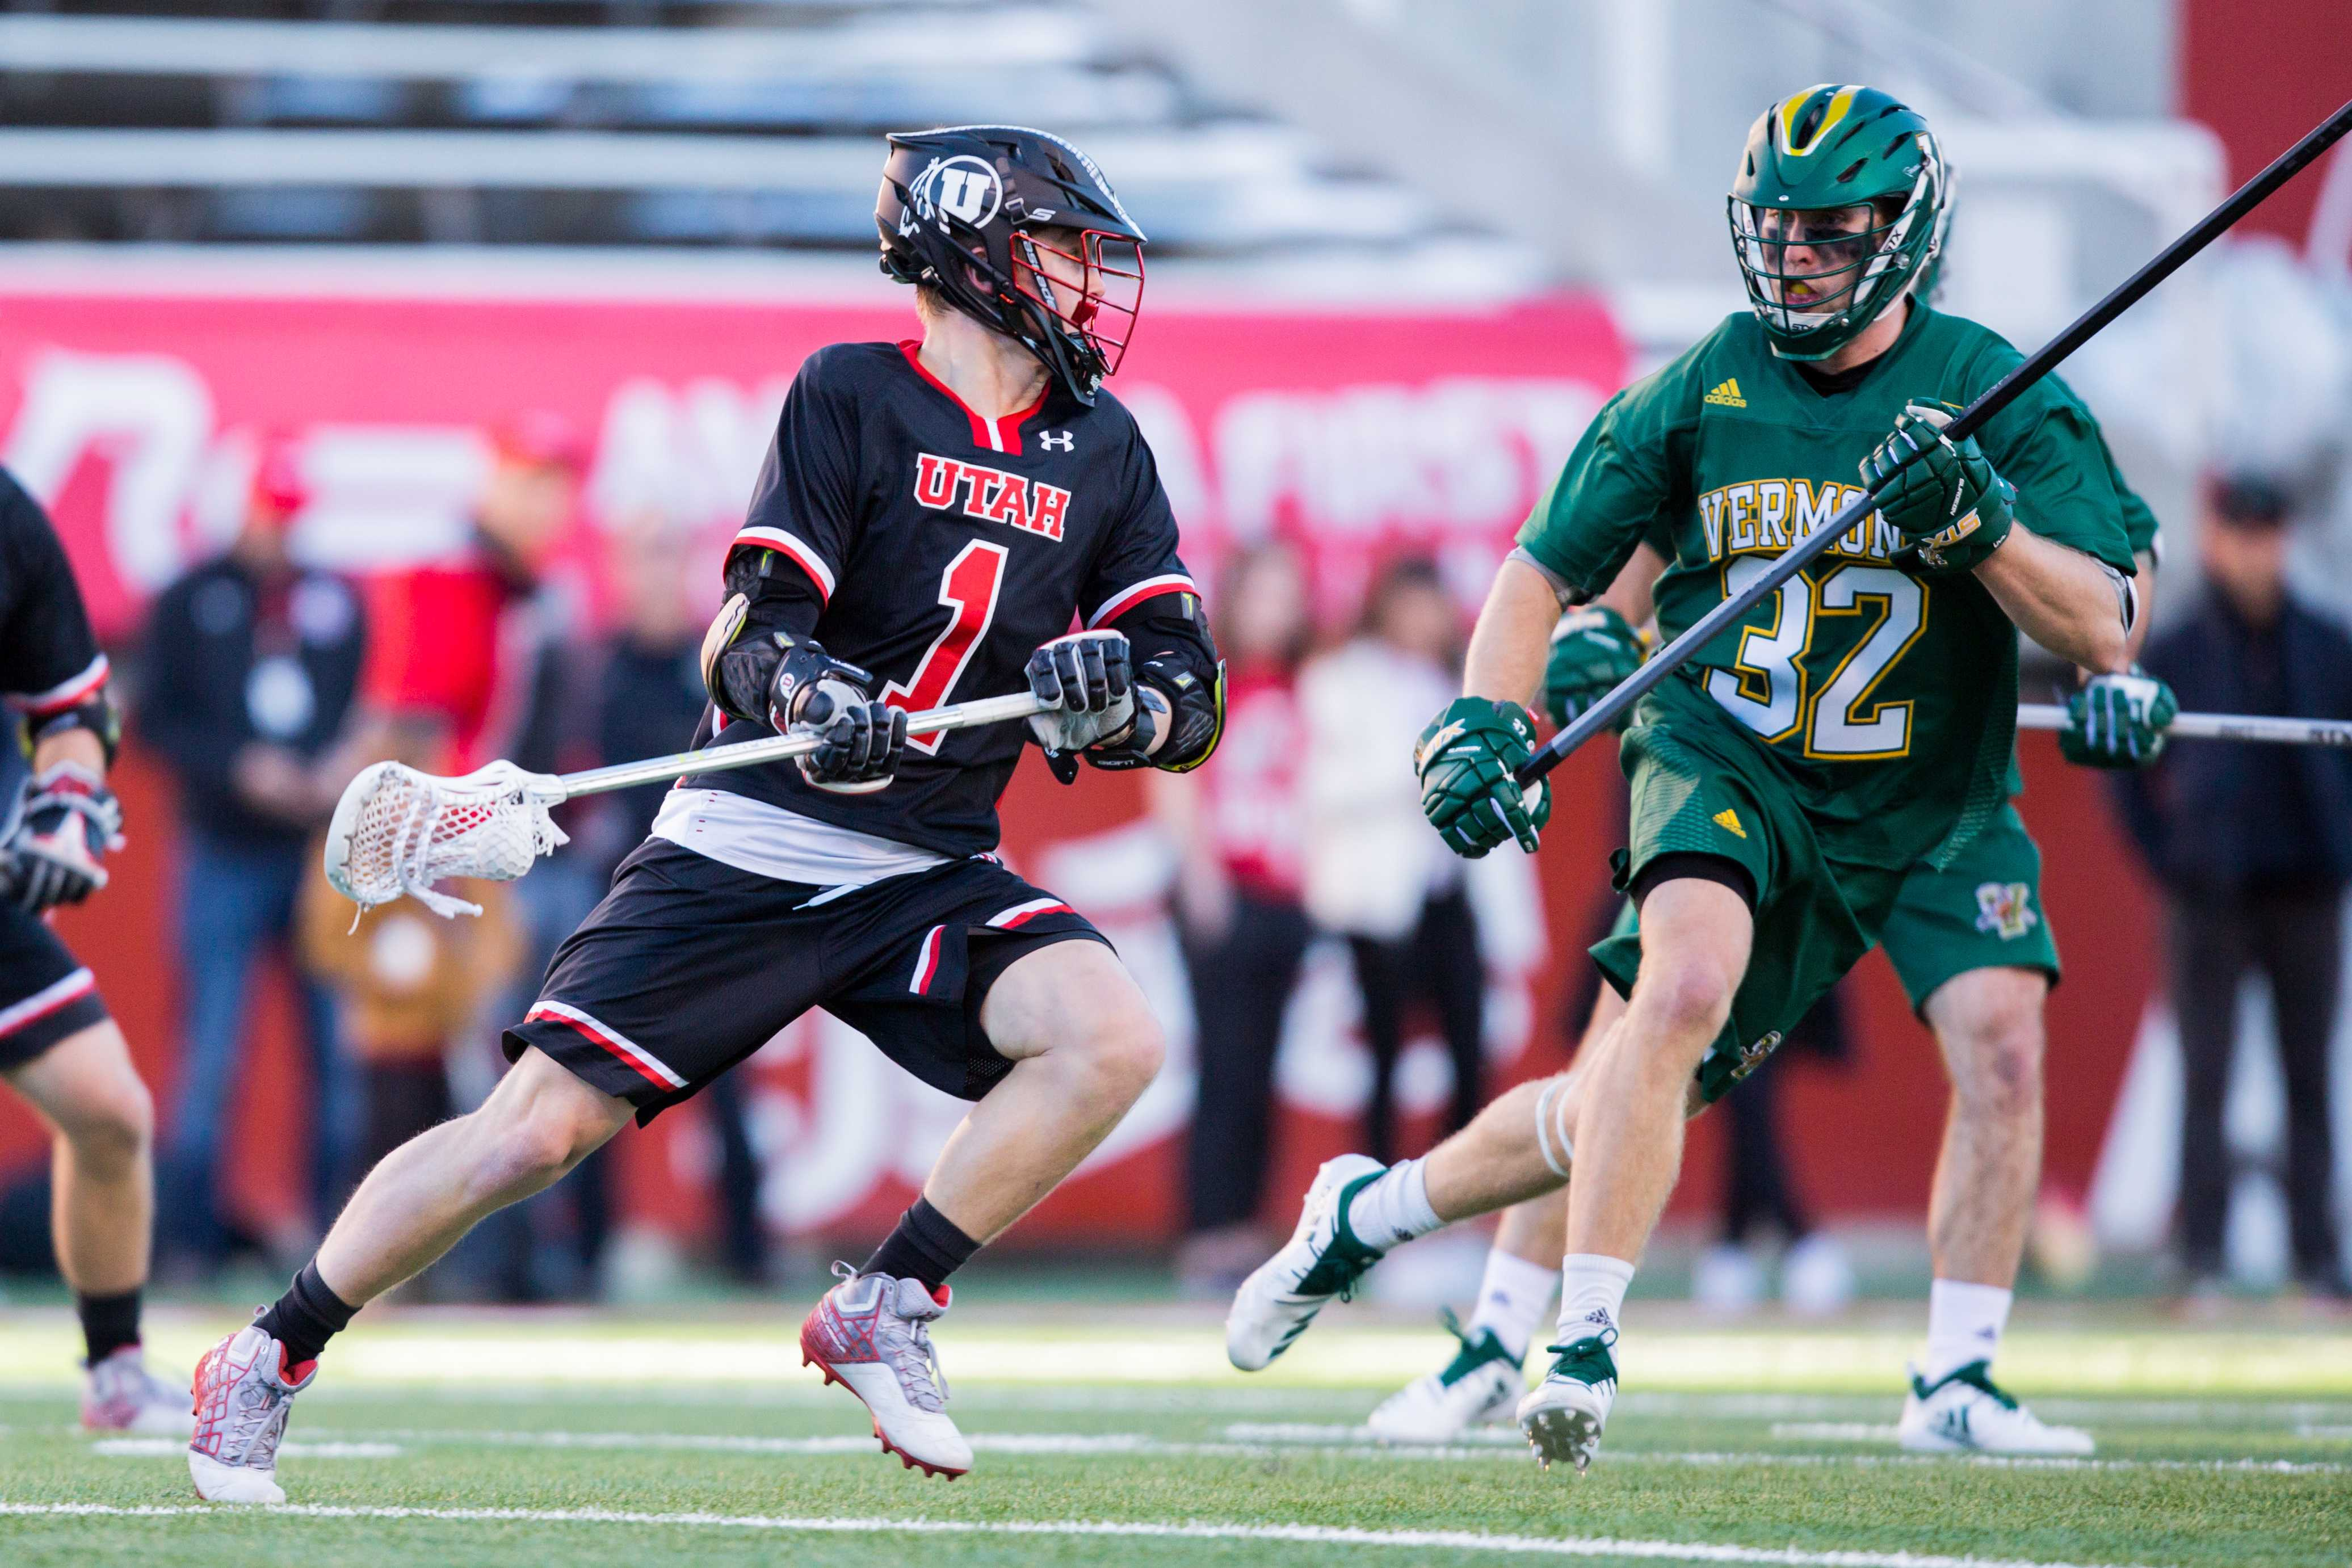 University of Utah sophomore attacker Josh Stout (1) looked for an open teammate to pass to in an NCAA Men's Lacrosse game vs. Vermont at Rice-Eccles Stadium in Salt Lake City, UT on Friday February 01, 2019.  (Photo by Curtis Lin | Daily Utah Chronicle)